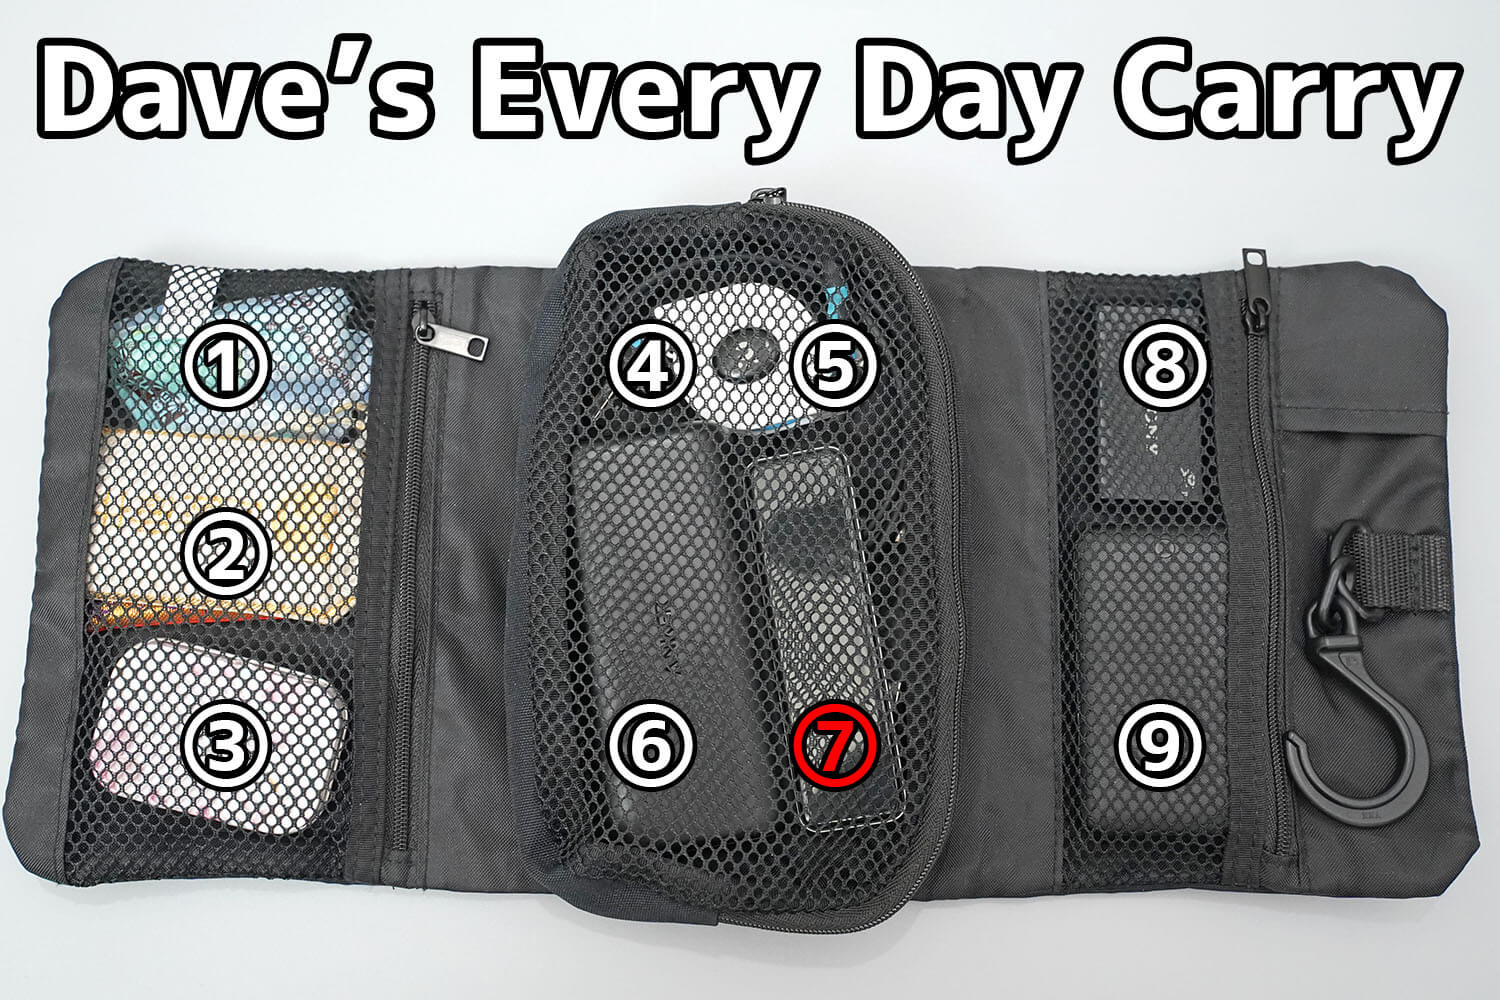 デイブのEvery Day Carry(EDC)